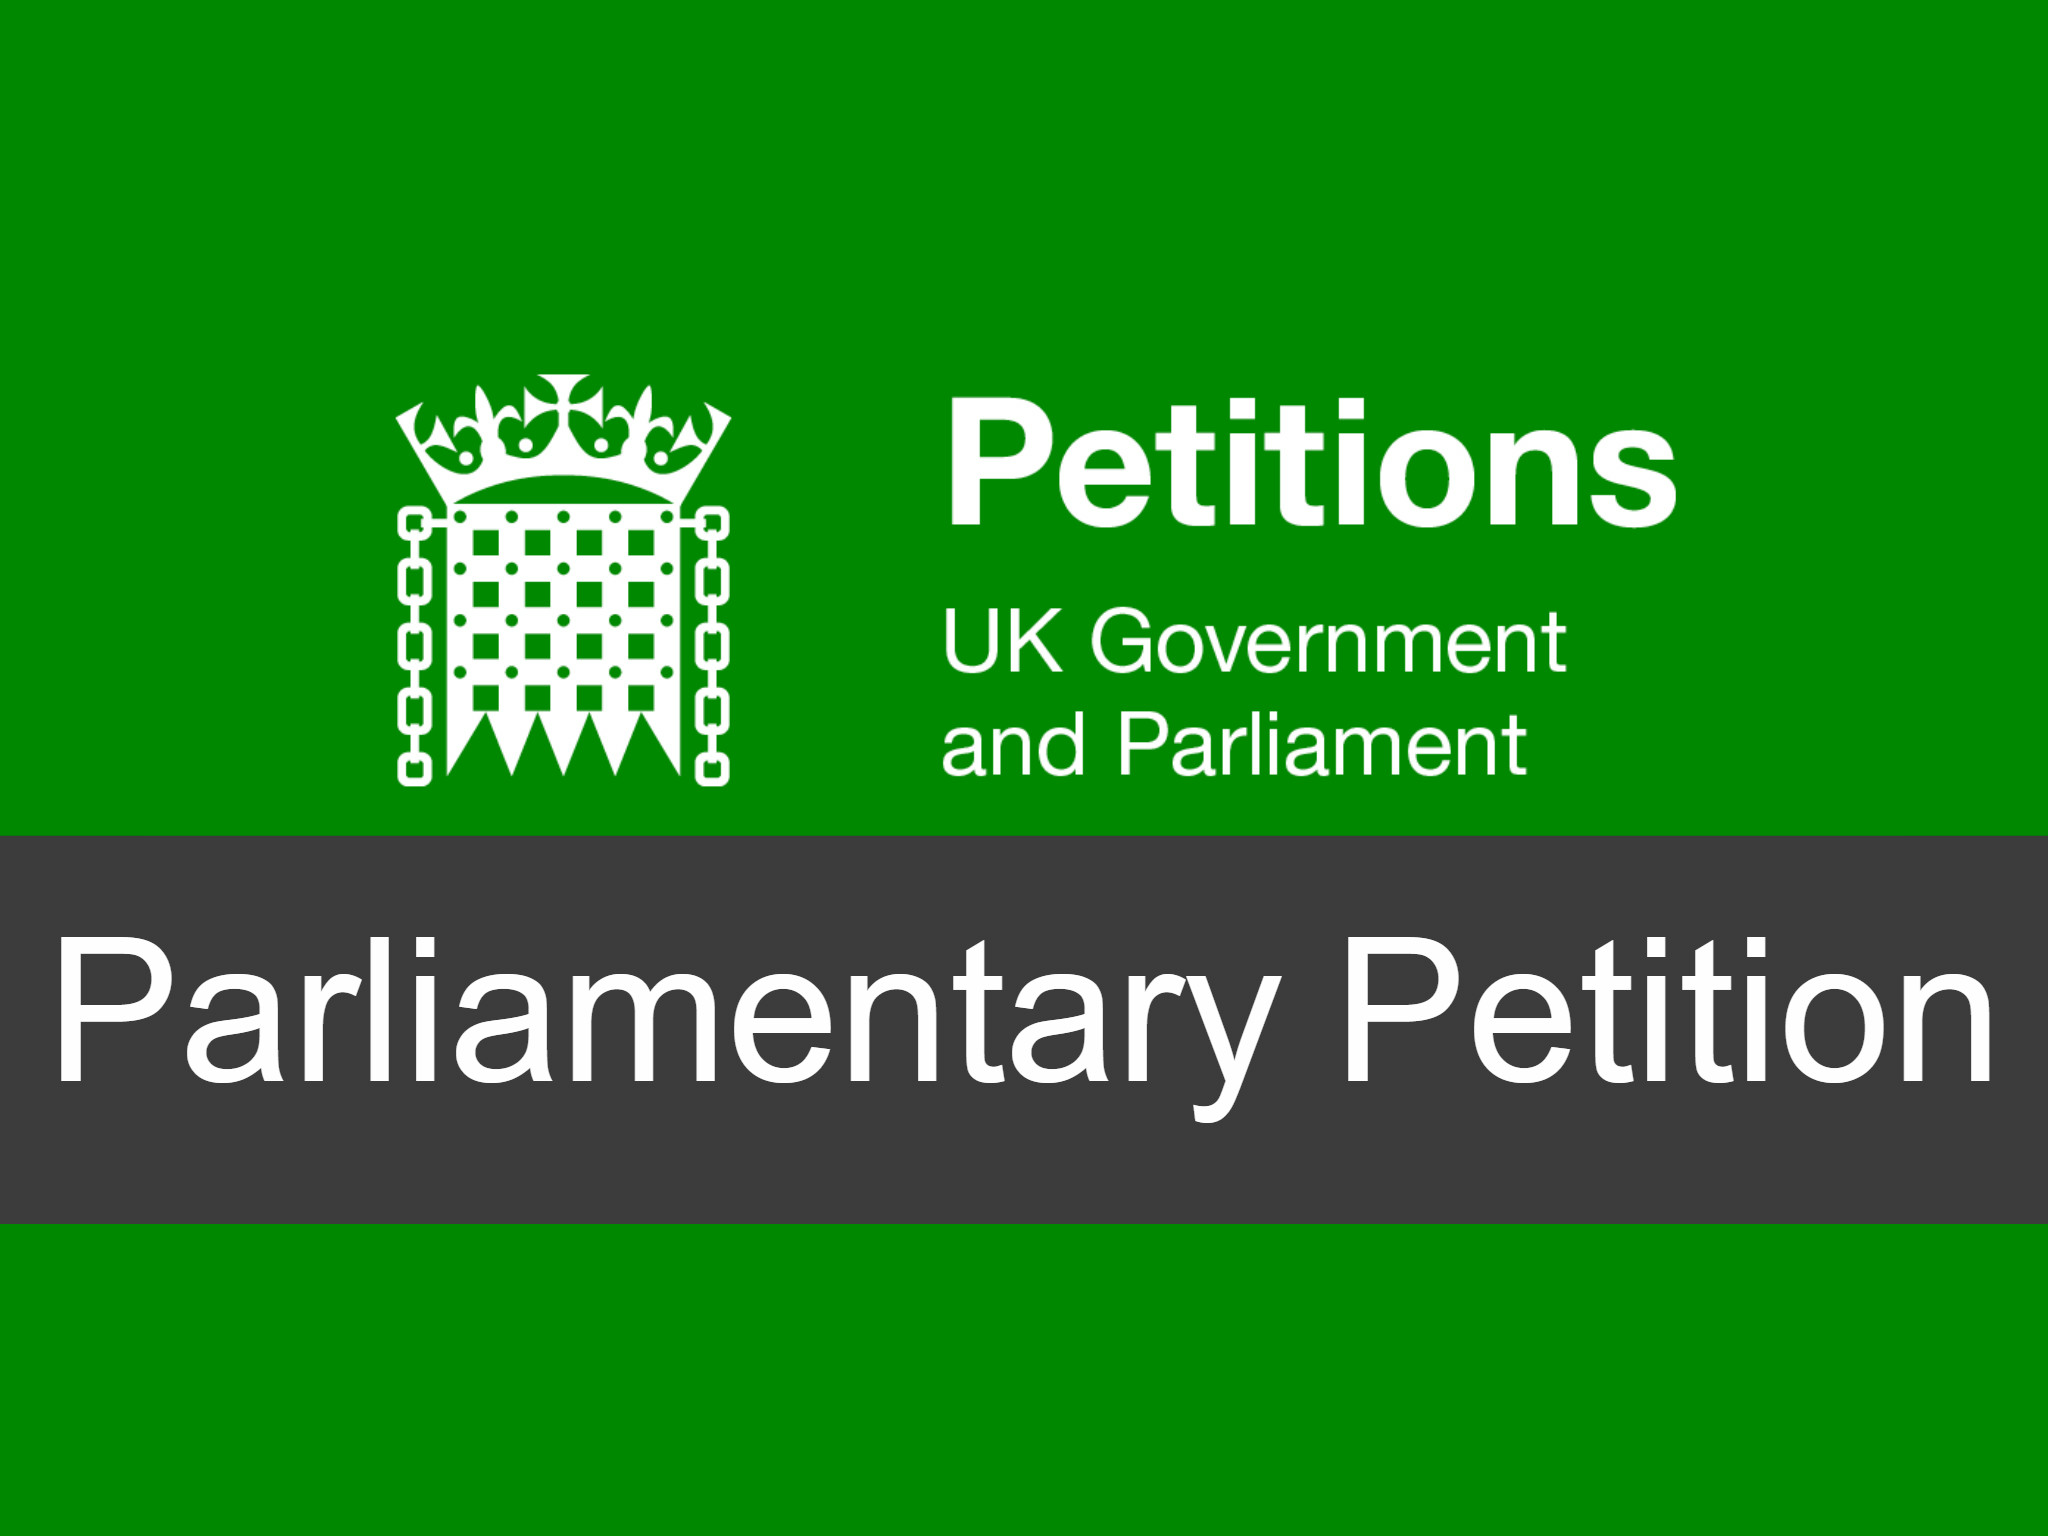 Click to view,sign and share the petition!